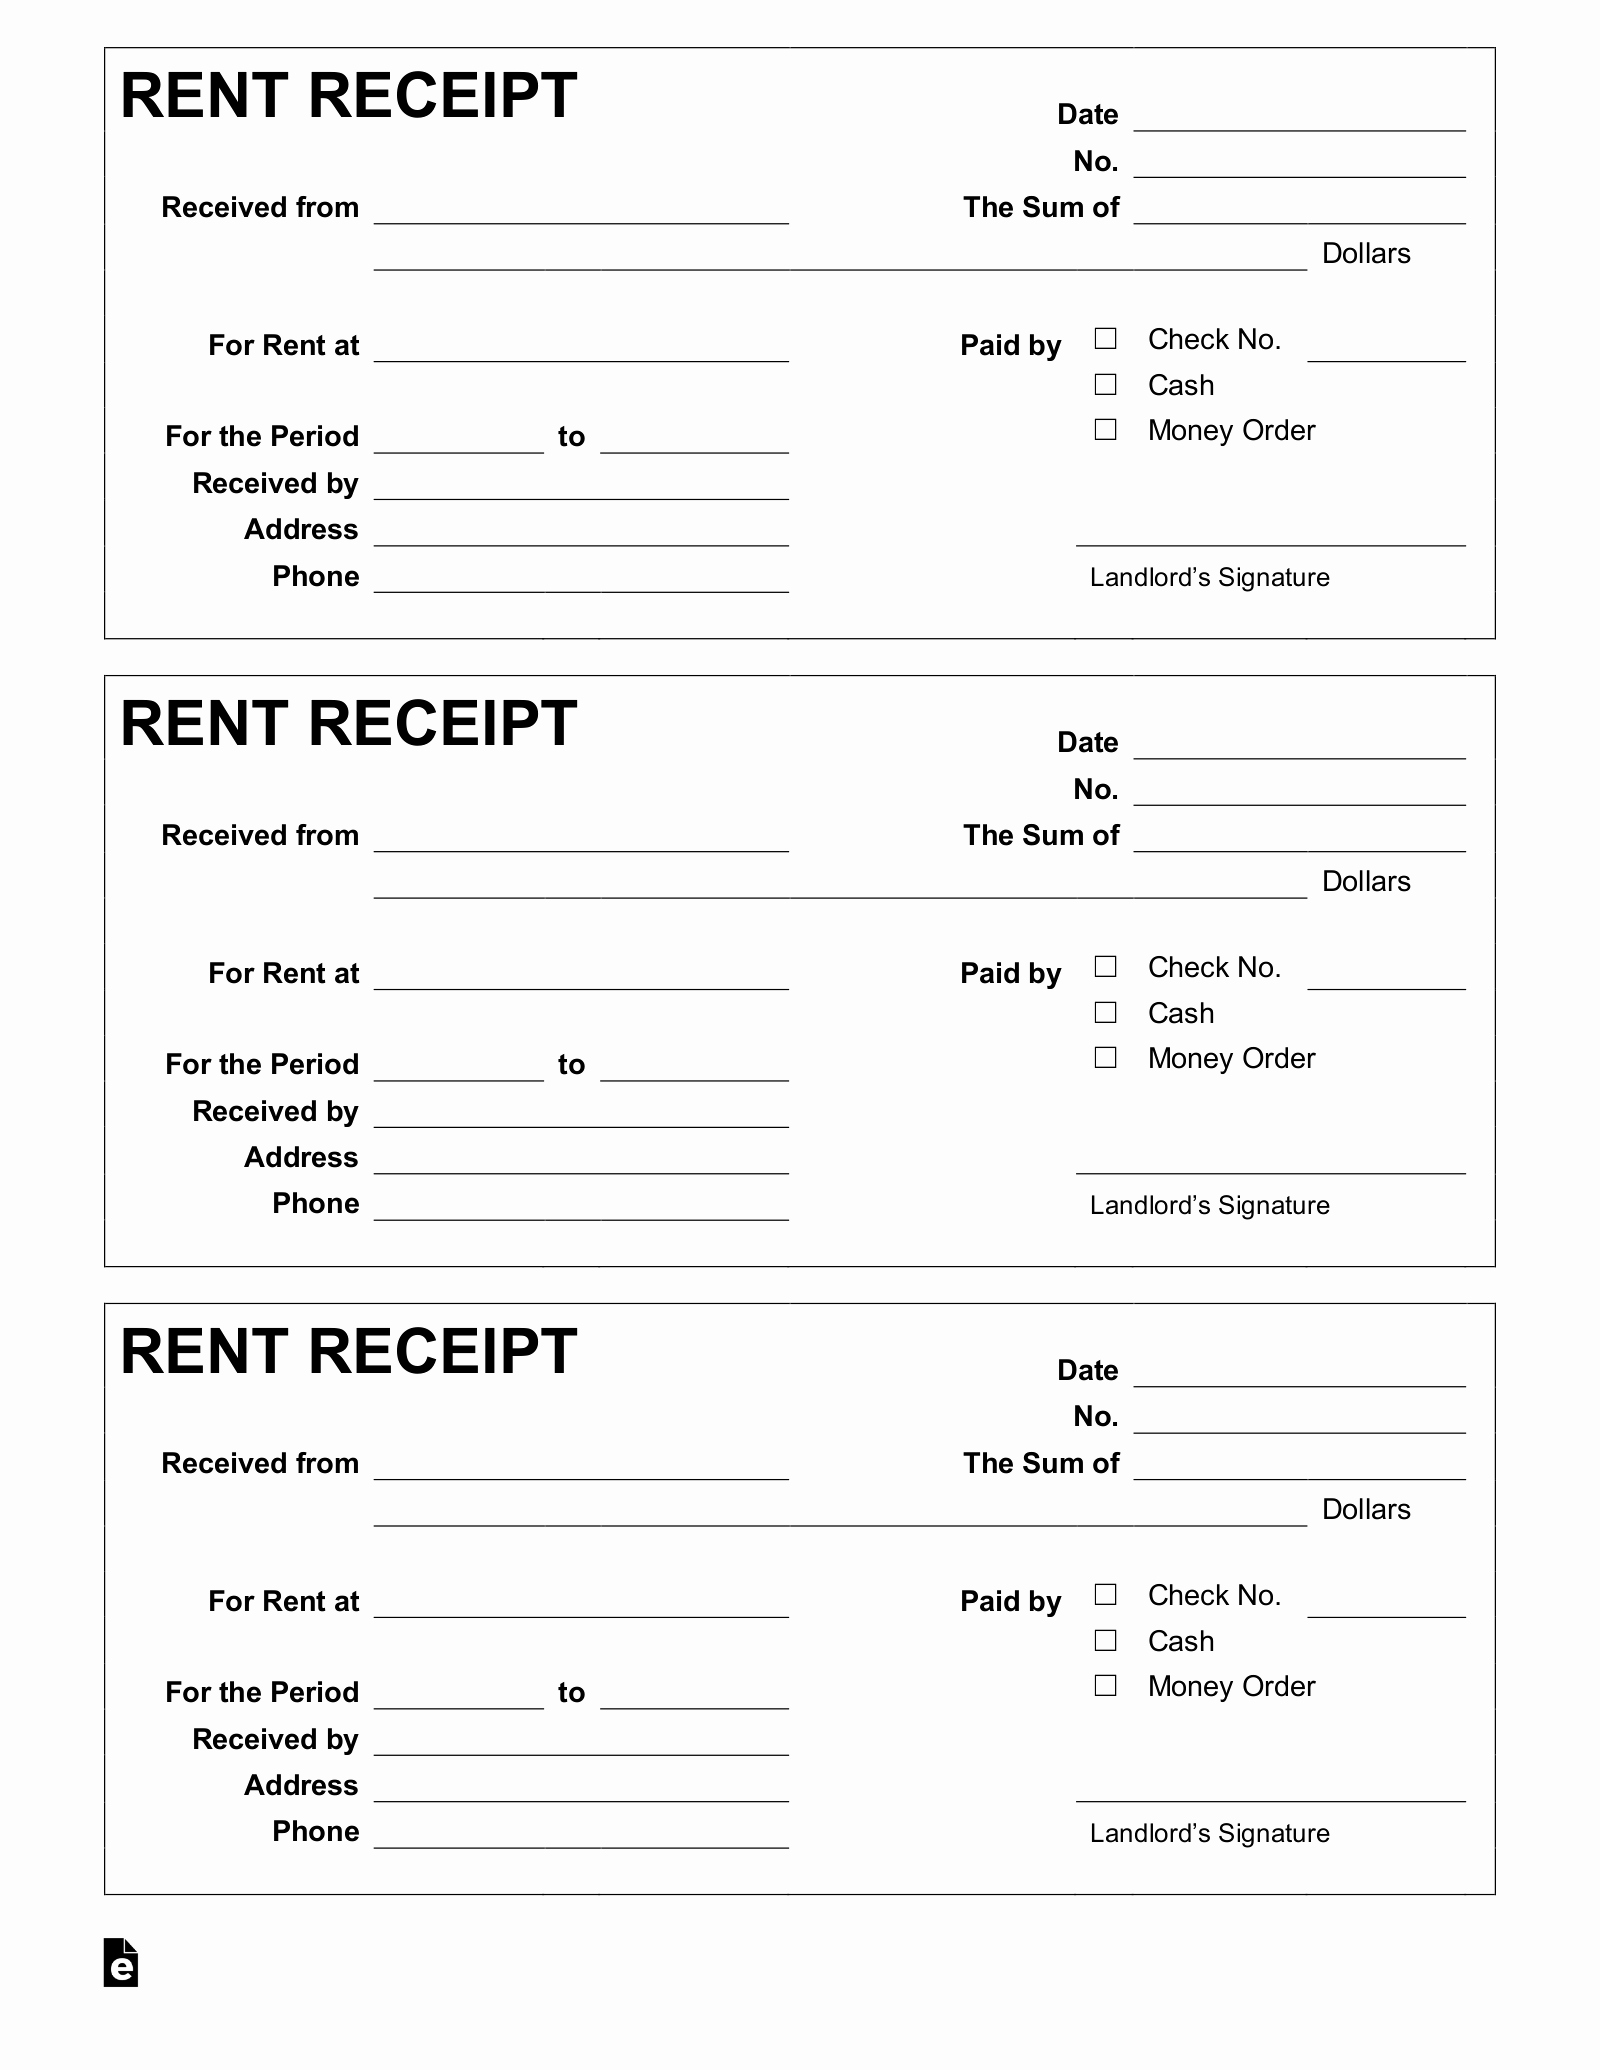 Rent Invoice Template Free Awesome Free Rent Receipt Template Pdf Word